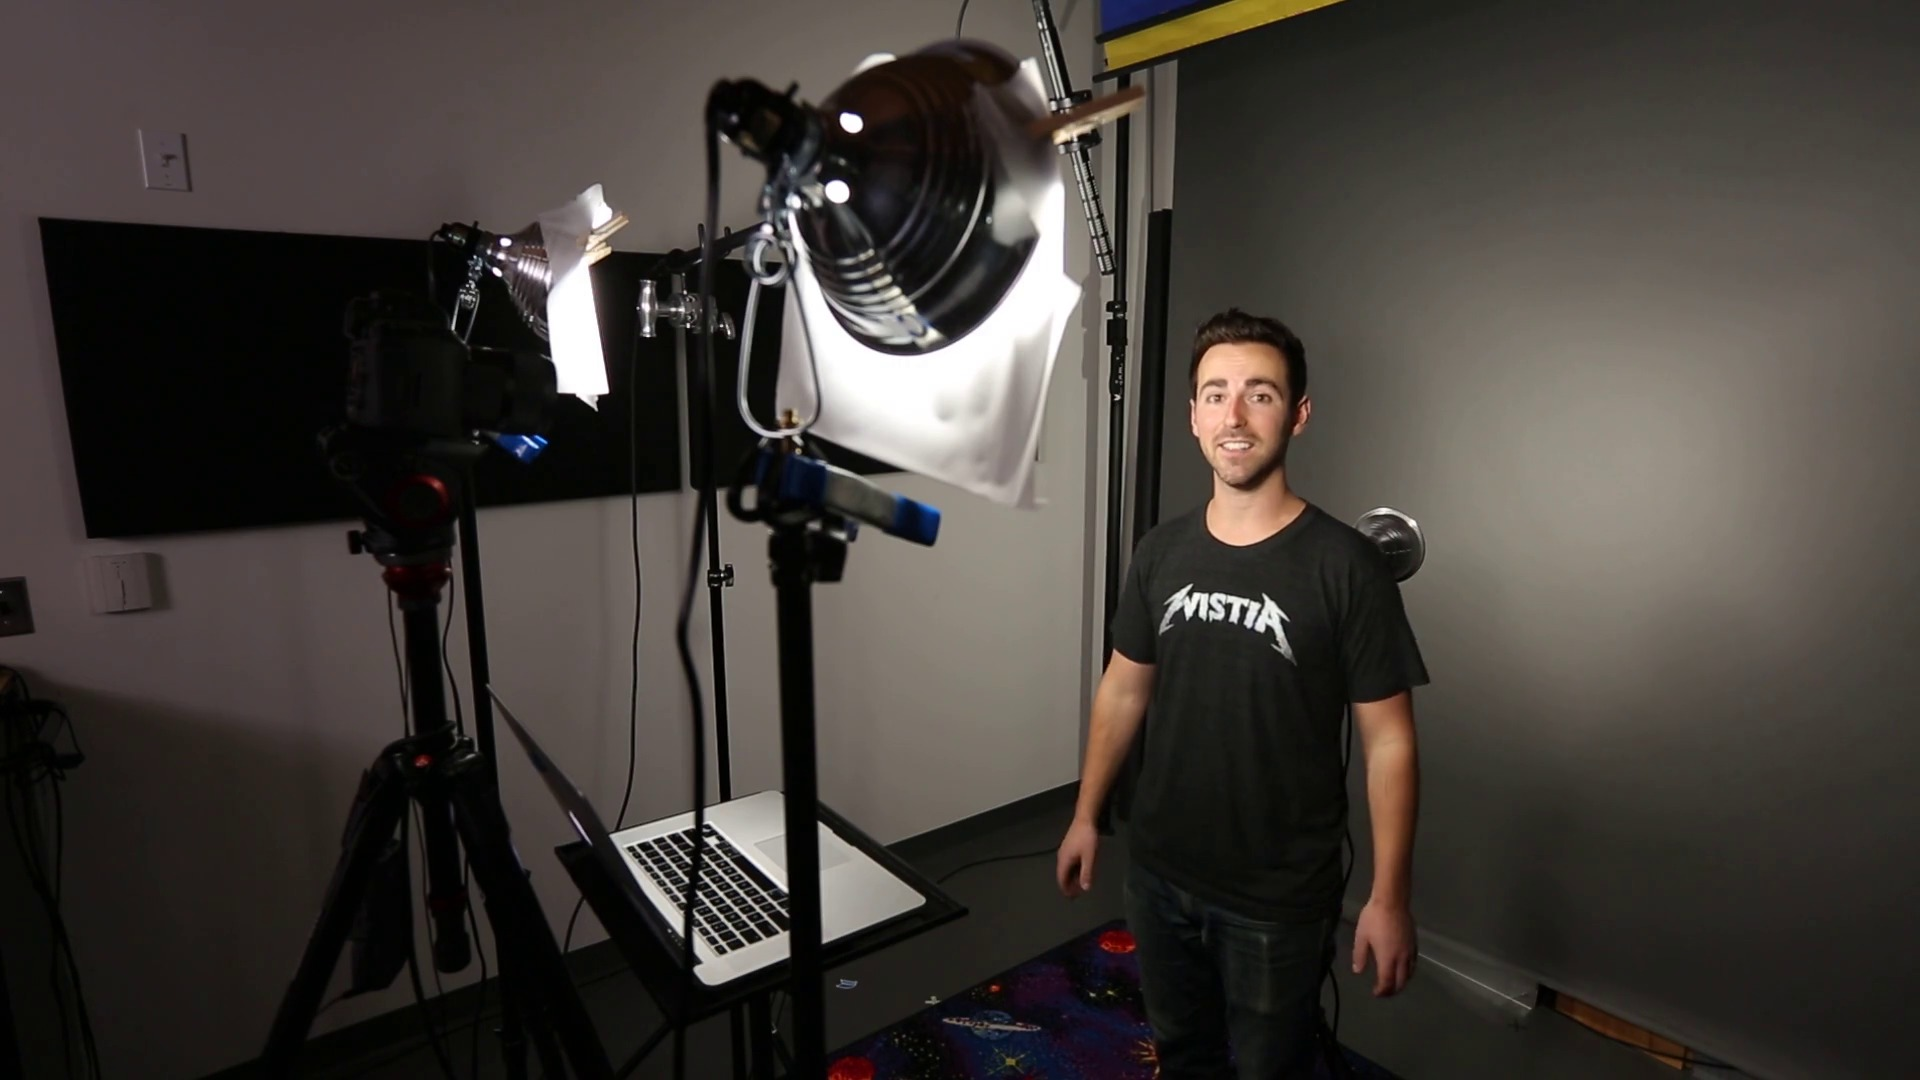 The Down And Dirty DIY Lighting Kit | Wistia Learning Center